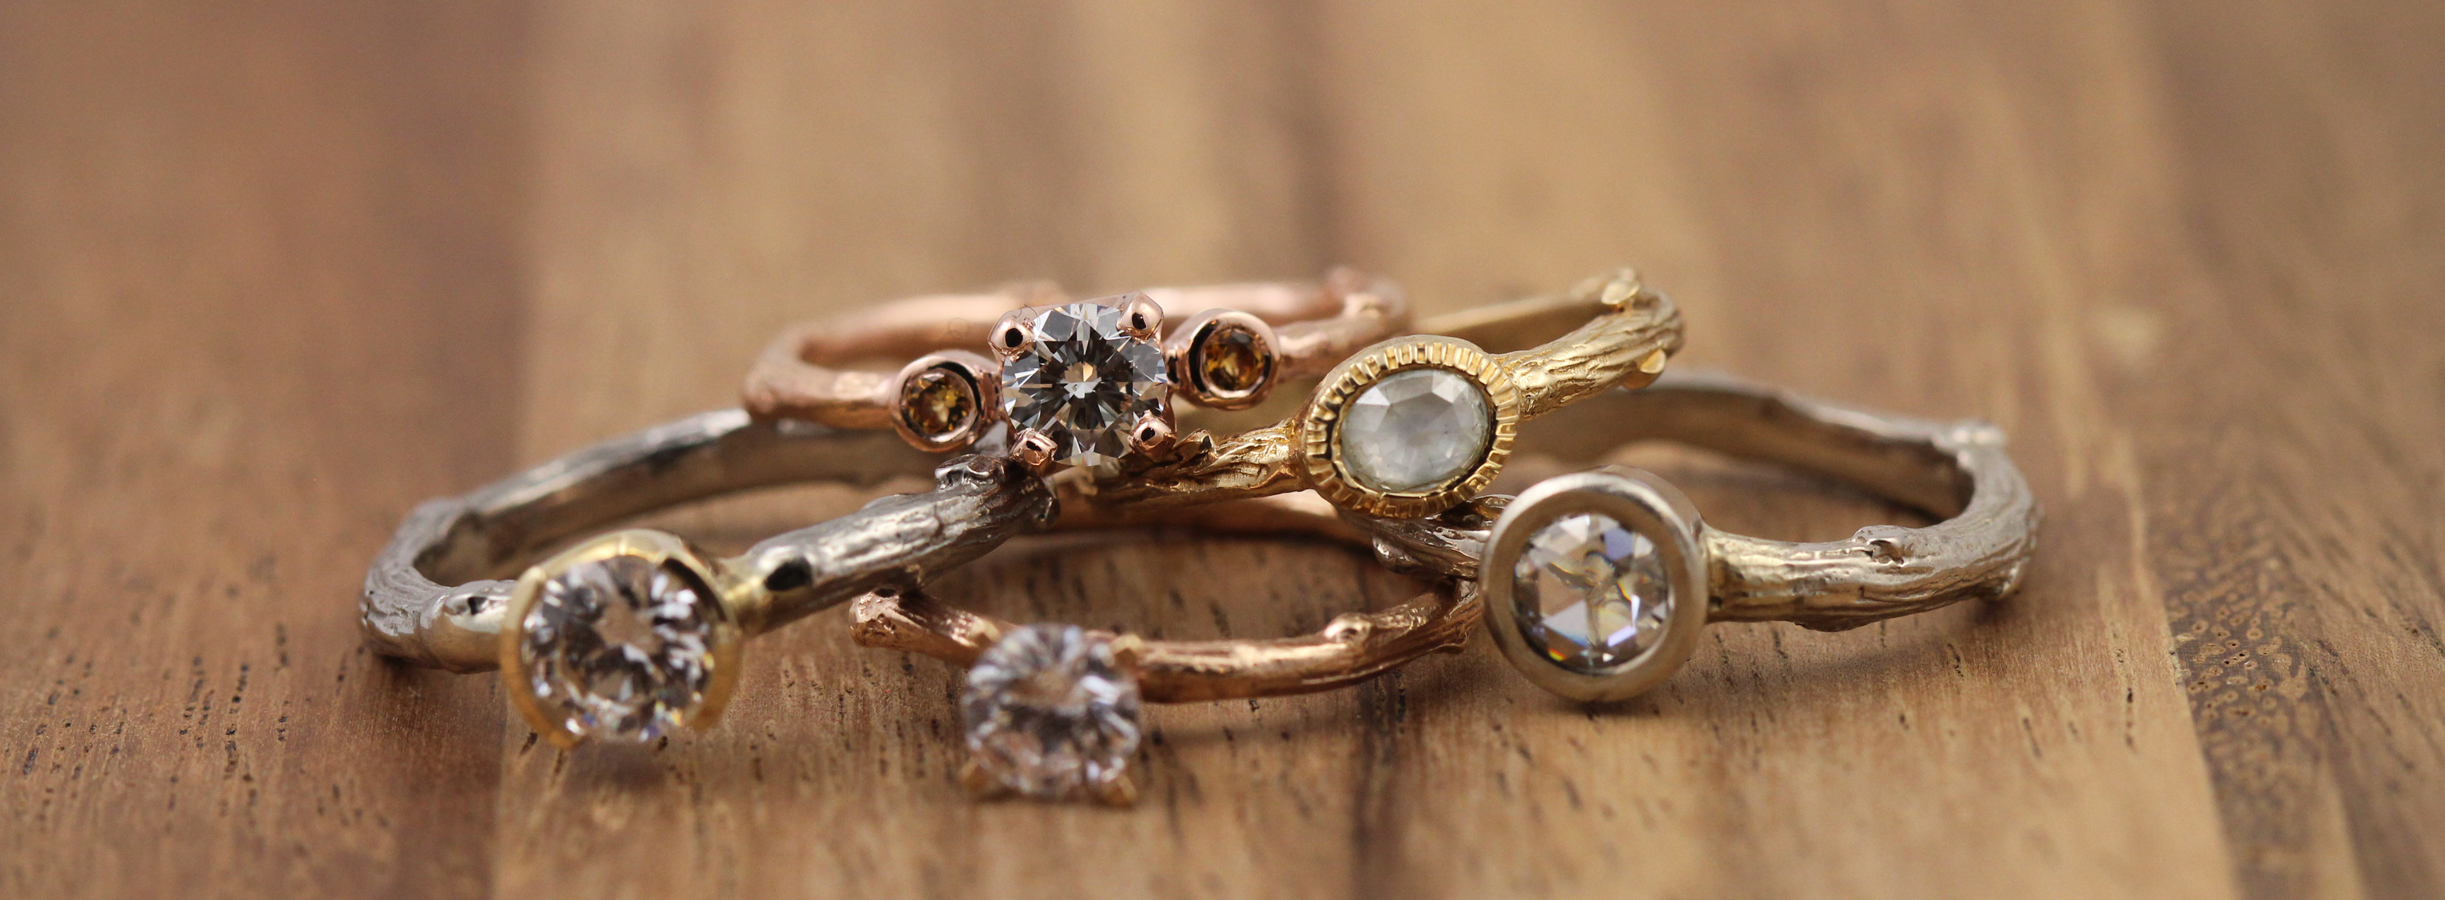 Twig engagement rings by Pippa Jayne Designs